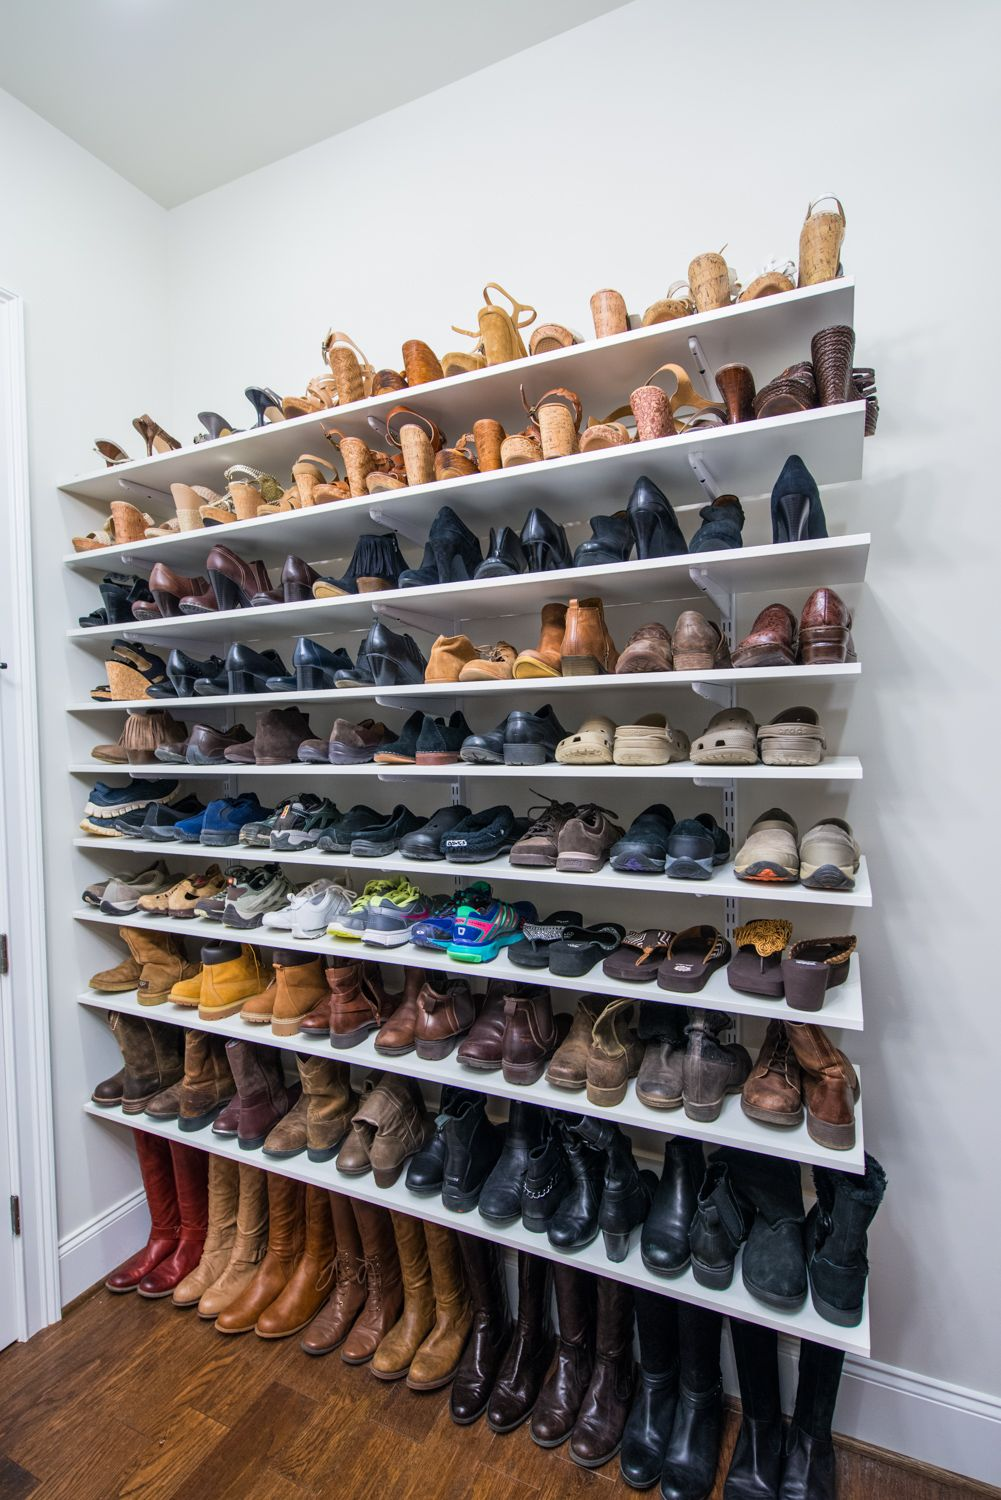 easy ways and organize your shoe collection for the home floating shelf rack keep shoes point with adjustable shelving like organized living freedomrail move shelves seasons